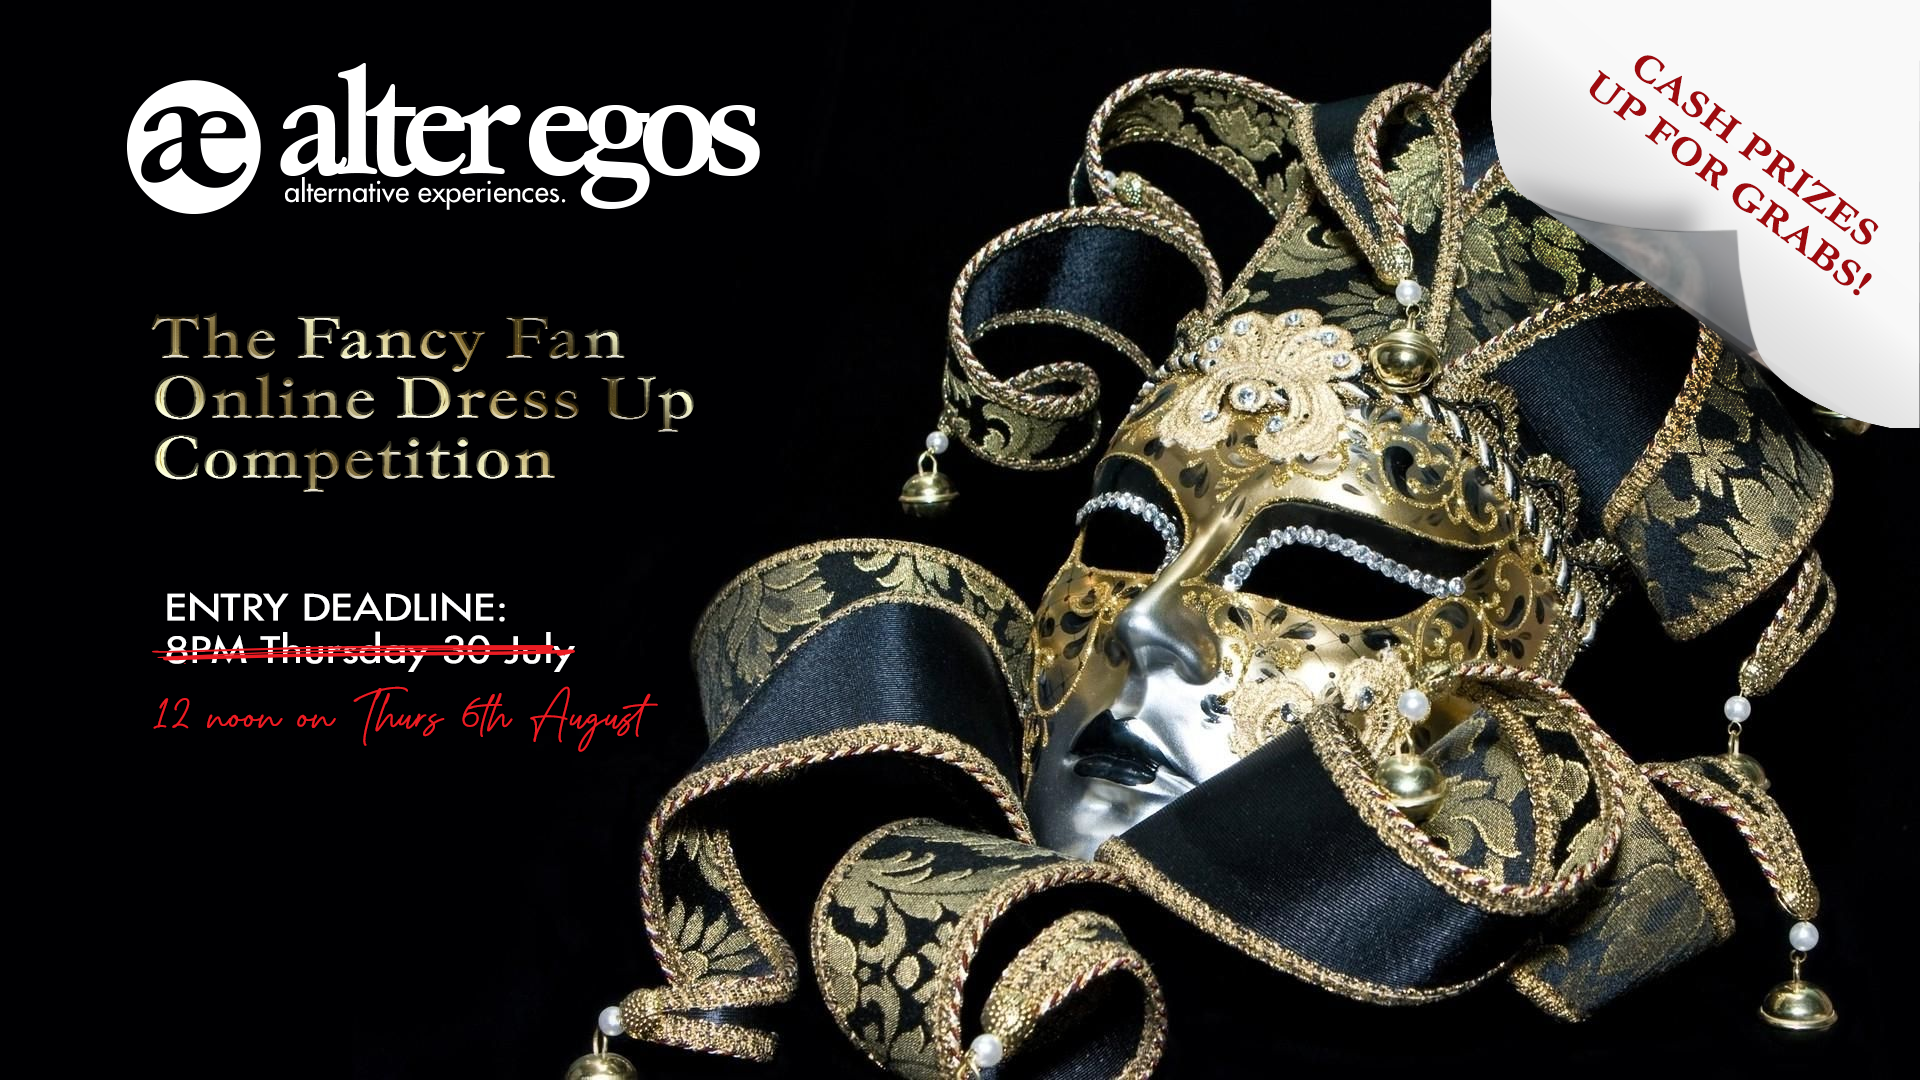 The AlterEgos Fancy Fan Online Dress Up Contest